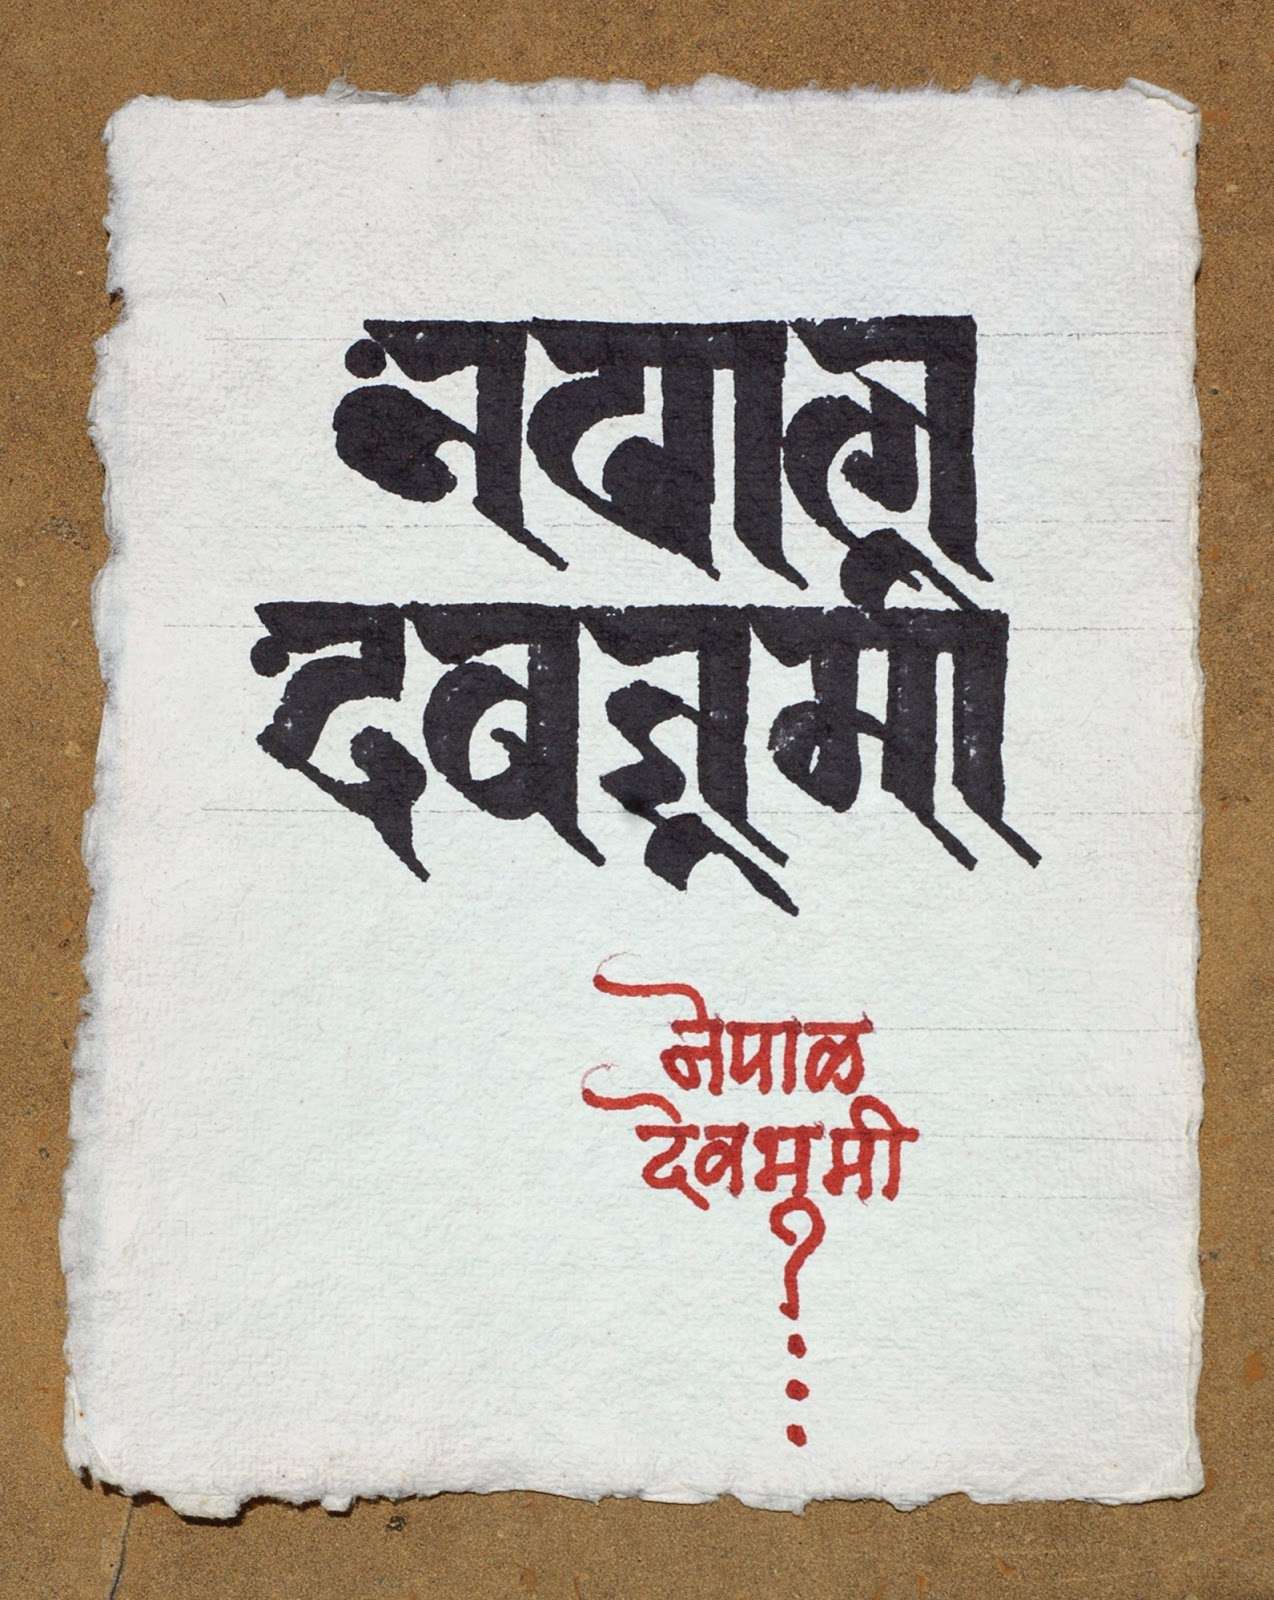 Copic Pen On Deckal Edge Handmade Paper 6x 75 Ranjana Devanagari Calligraphy Traditionally Nepal Also Known As Devbhoomi Ie Land Of Gods